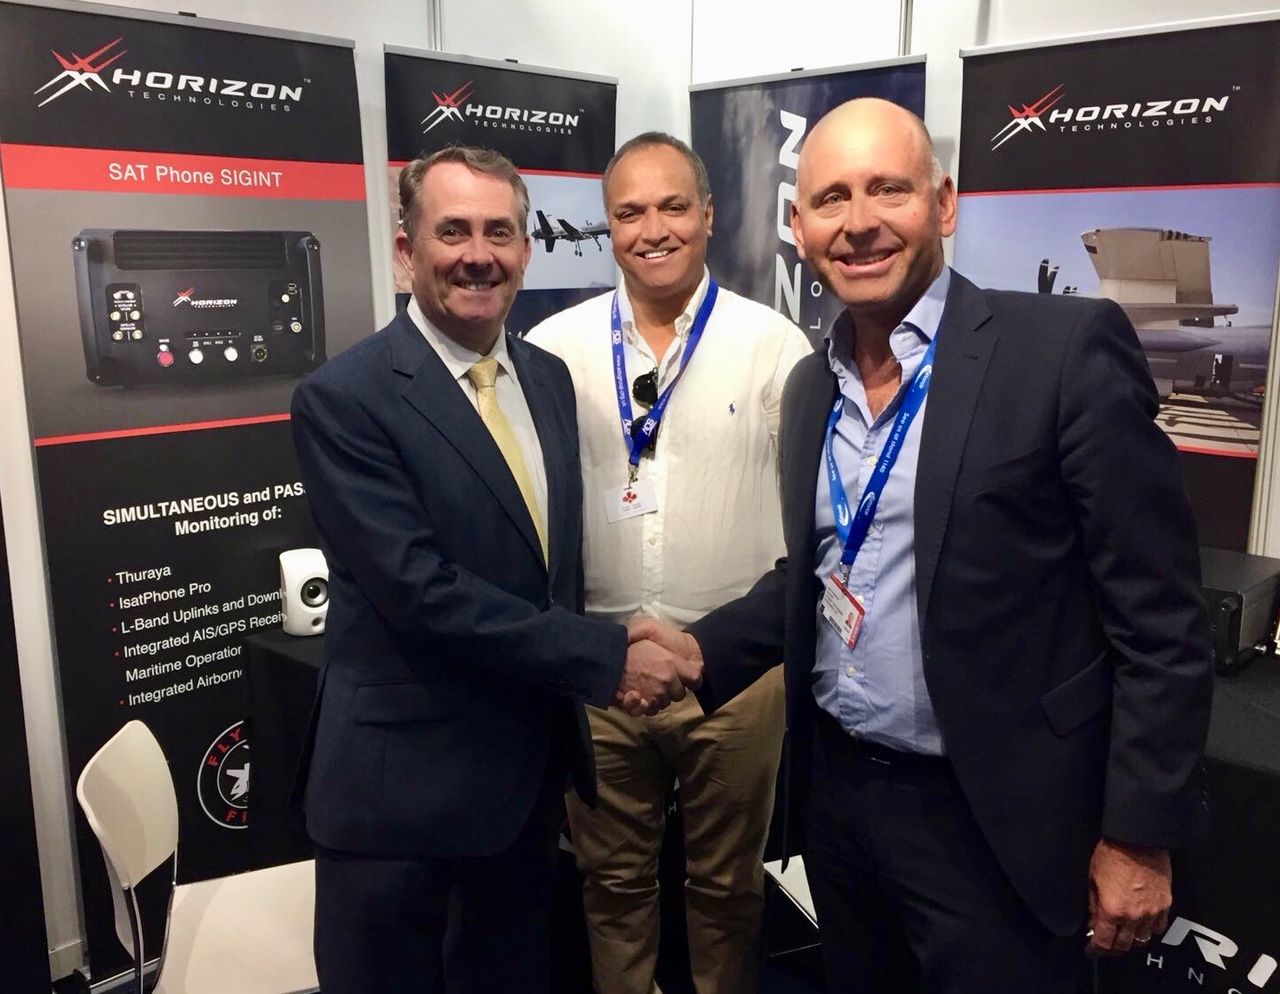 Horizon Technologies hosts The UK Secretary of State for International Trade at FIA18. From left, Rt. Hon. Liam Fox MP, Bash Ahmed, and John Beckner.